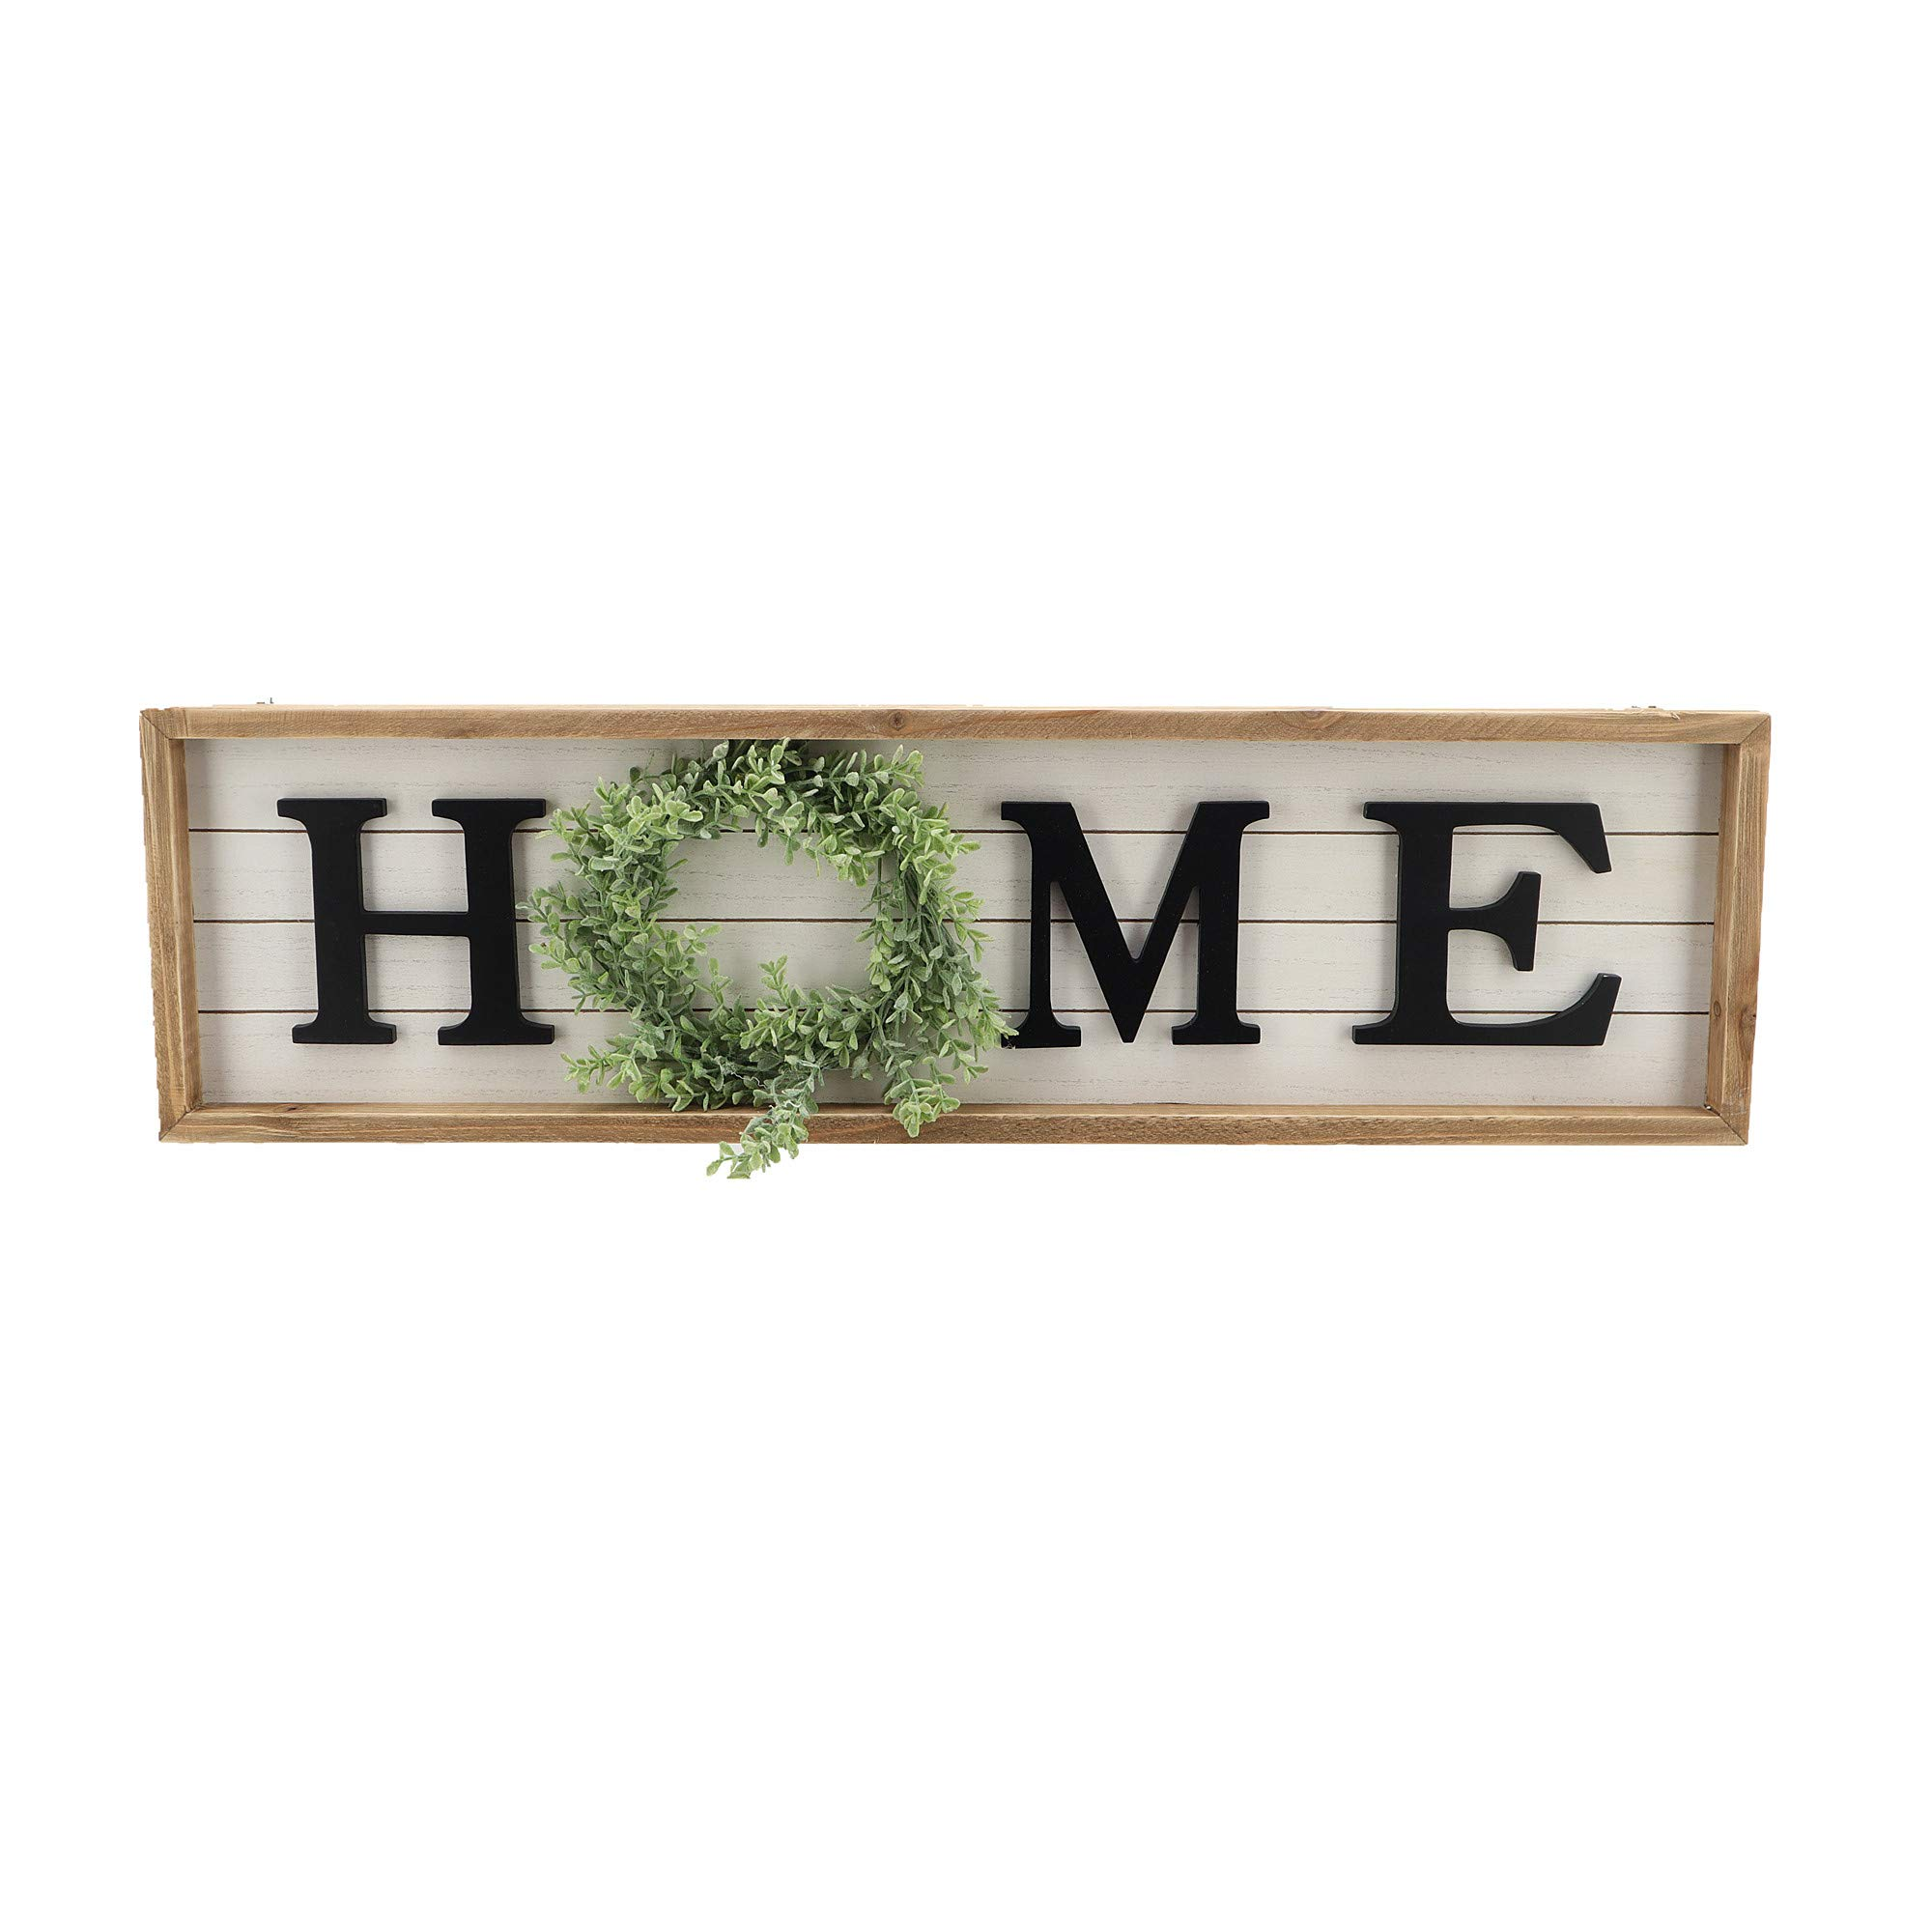 Paris Loft Wooden Framed Home Plaque with Green Wreath for The O Housewarming Home Decor,Large Farmhouse Home Signs Plaque Wall Hanging Decor for Mantle Living Room. 31.5x1.25x8.75'' by Parisloft